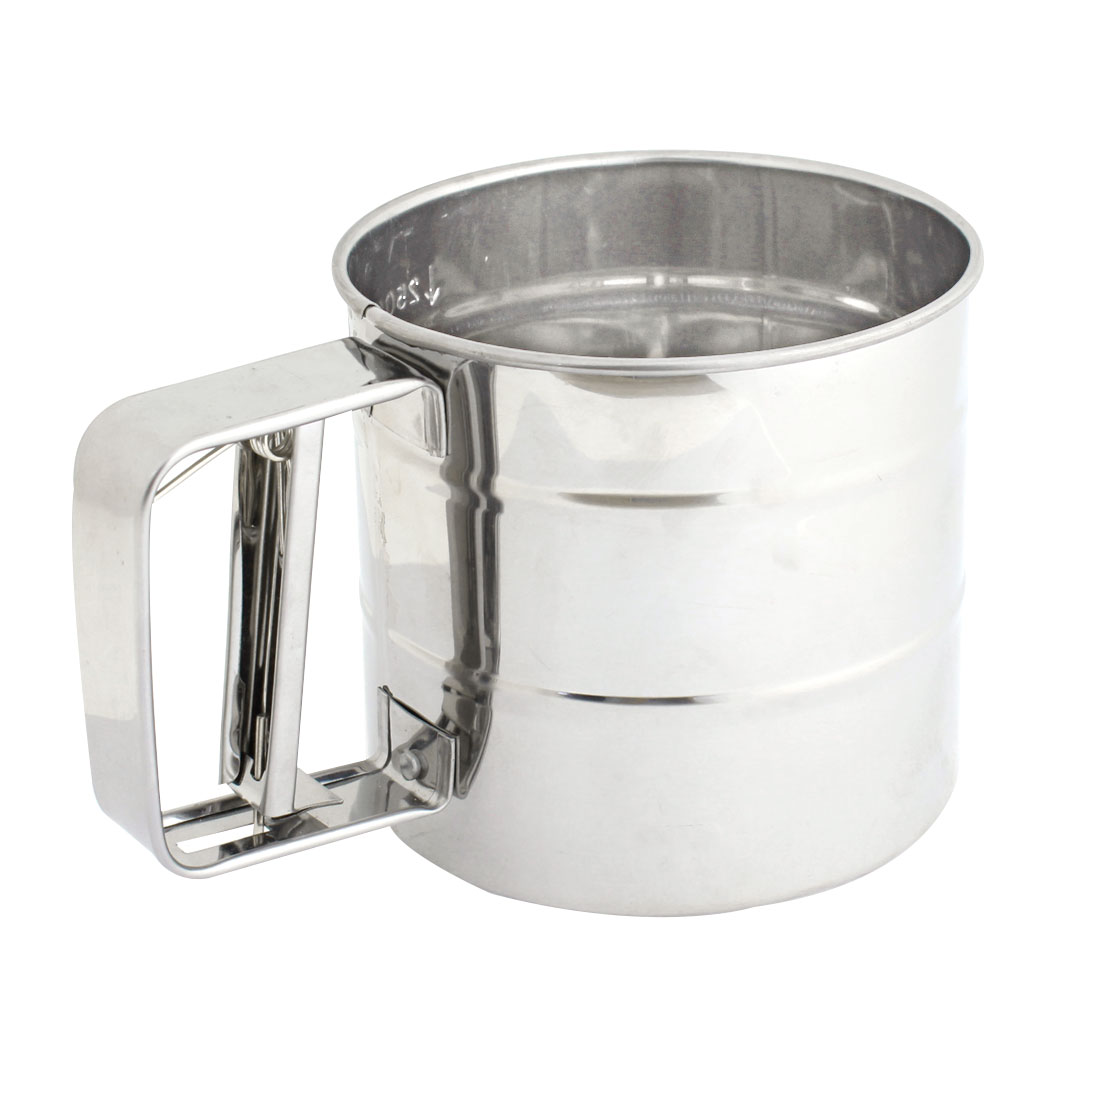 Kitchen Stainless Steel Trigger Handle Flour Sifter Economy Sift Aerator